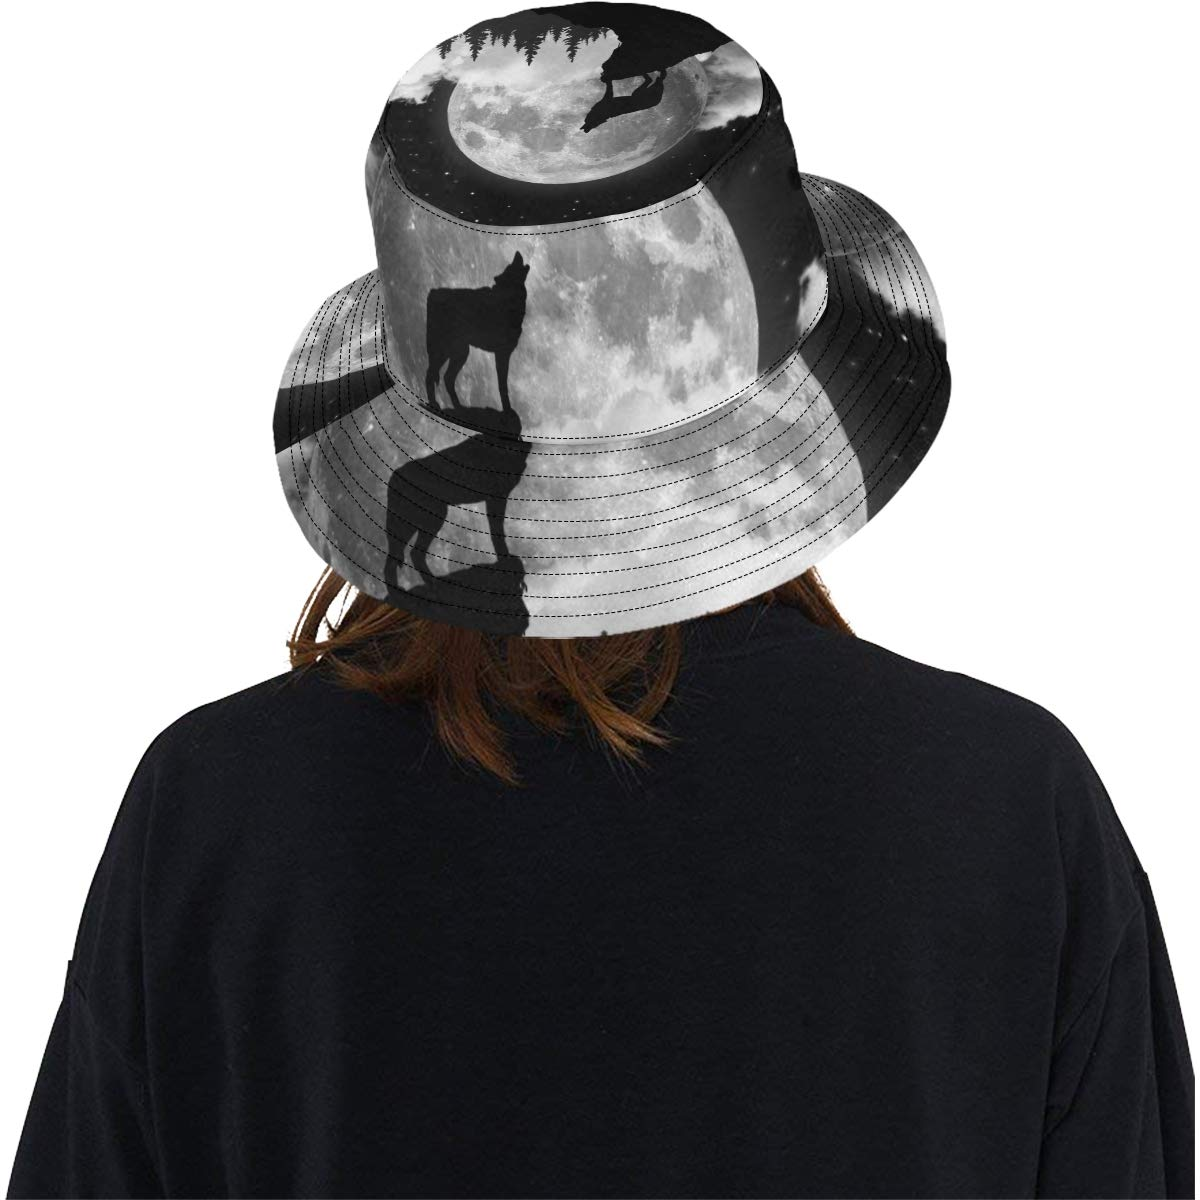 Creepy Wolf Howling at Midnight Full Moon New Summer Unisex Cotton Fashion Fishing Sun Bucket Hats for Kid Teens Women and Men with Customize Top Packable Fisherman Cap for Outdoor Travel